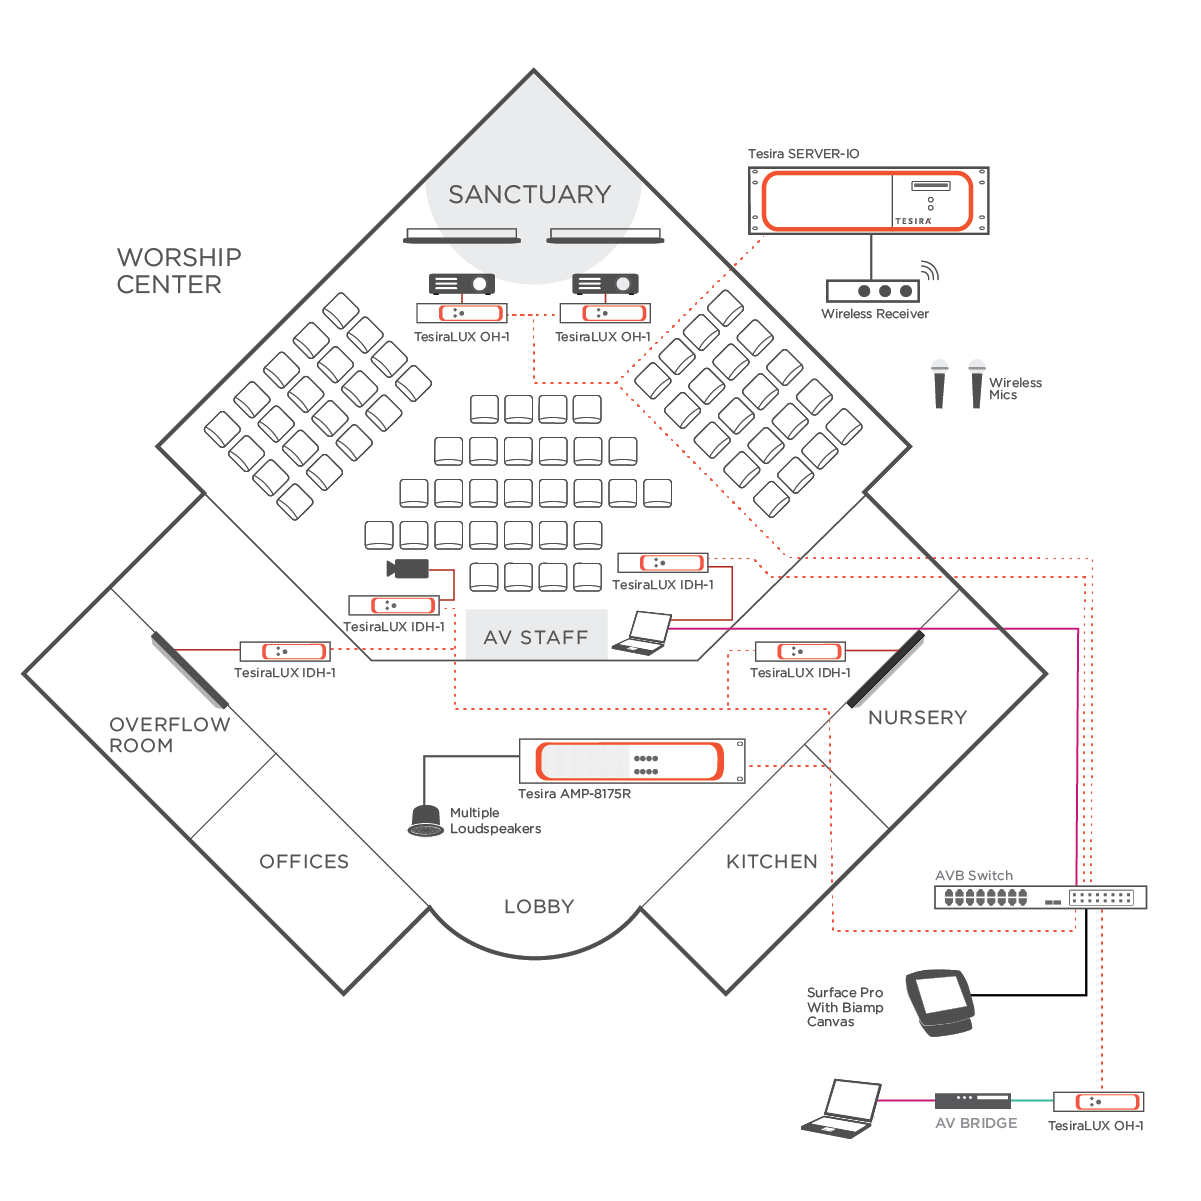 audio solutions for houses of worship Sanctuary Model of Tabernacle tesira diagram how